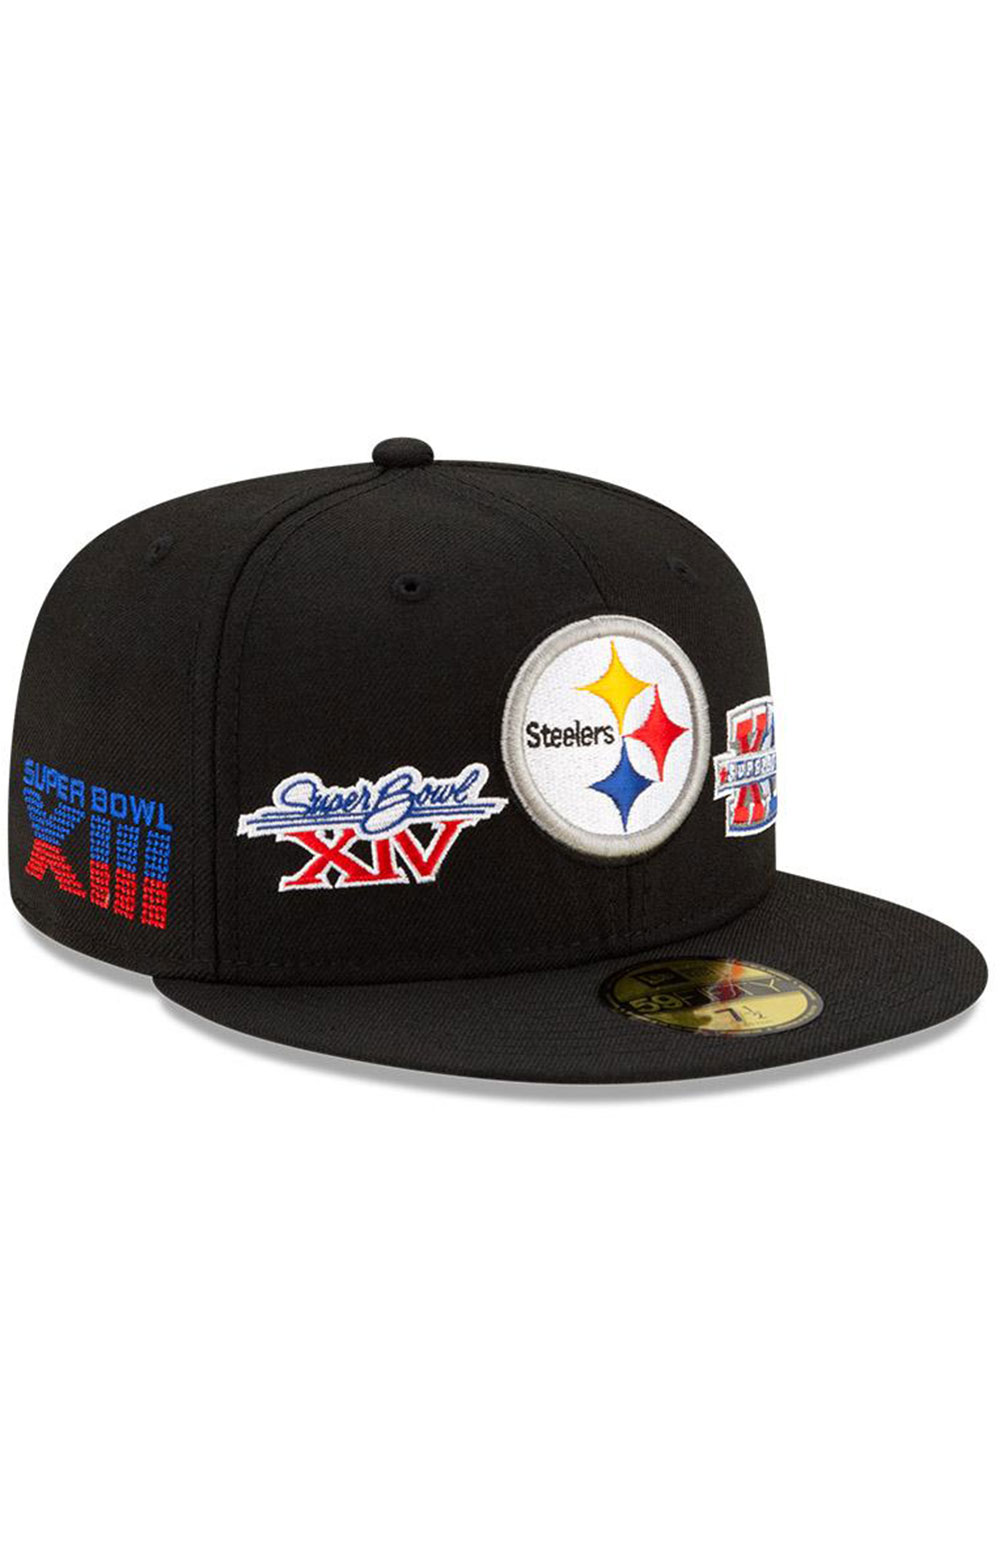 Pittsburgh Steelers Super Bowl Patch 59Fifty Fitted Hat - Black  2